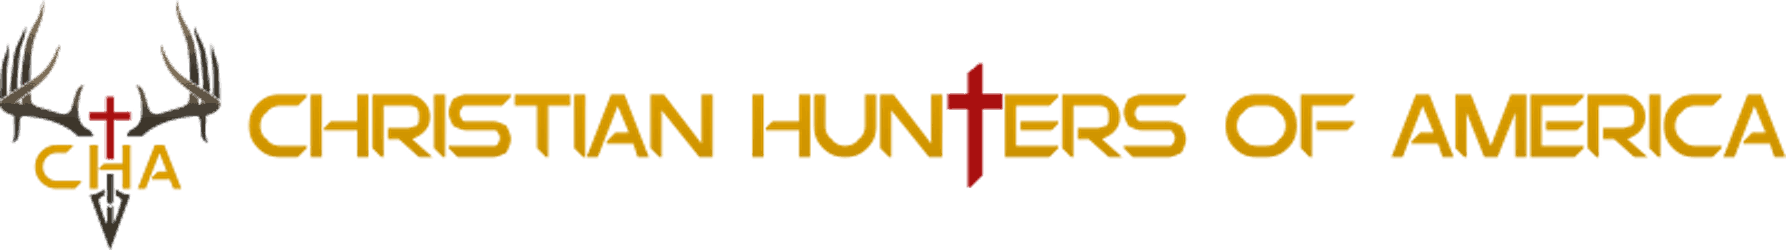 Christian Hunters of America Logo